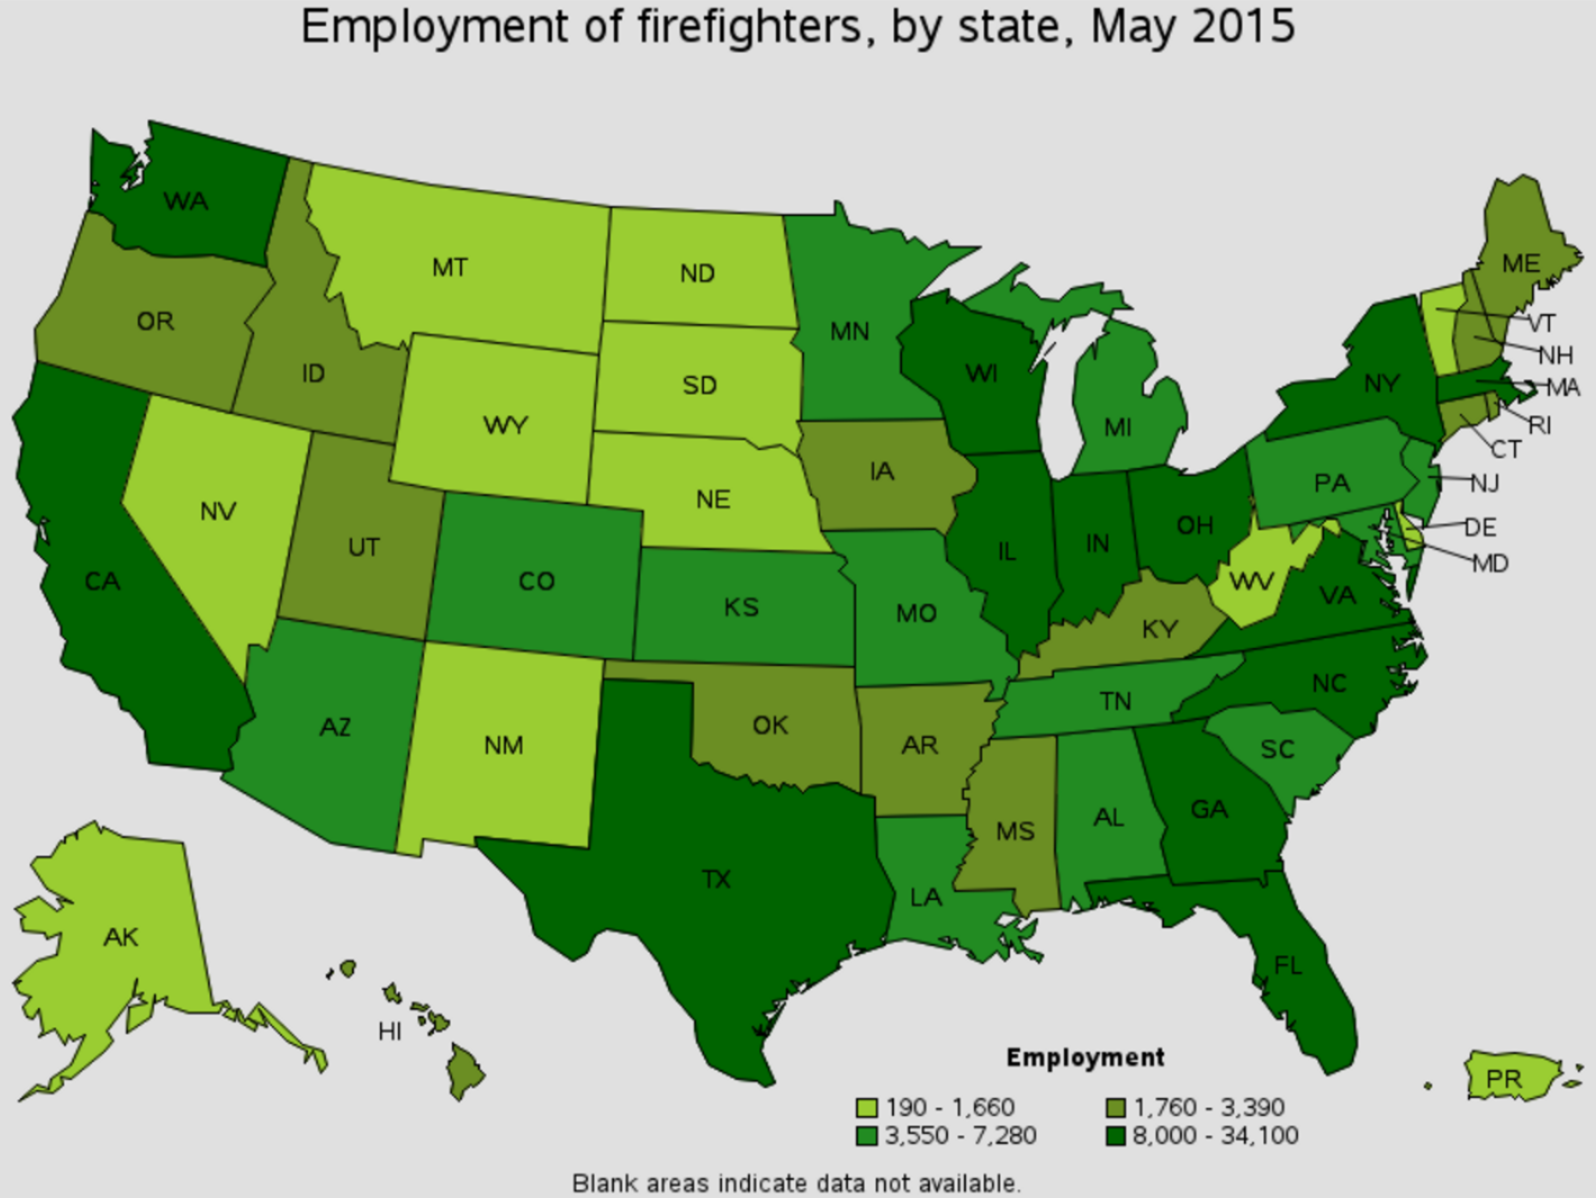 firefighter job outlook by state Windsor Mill Maryland